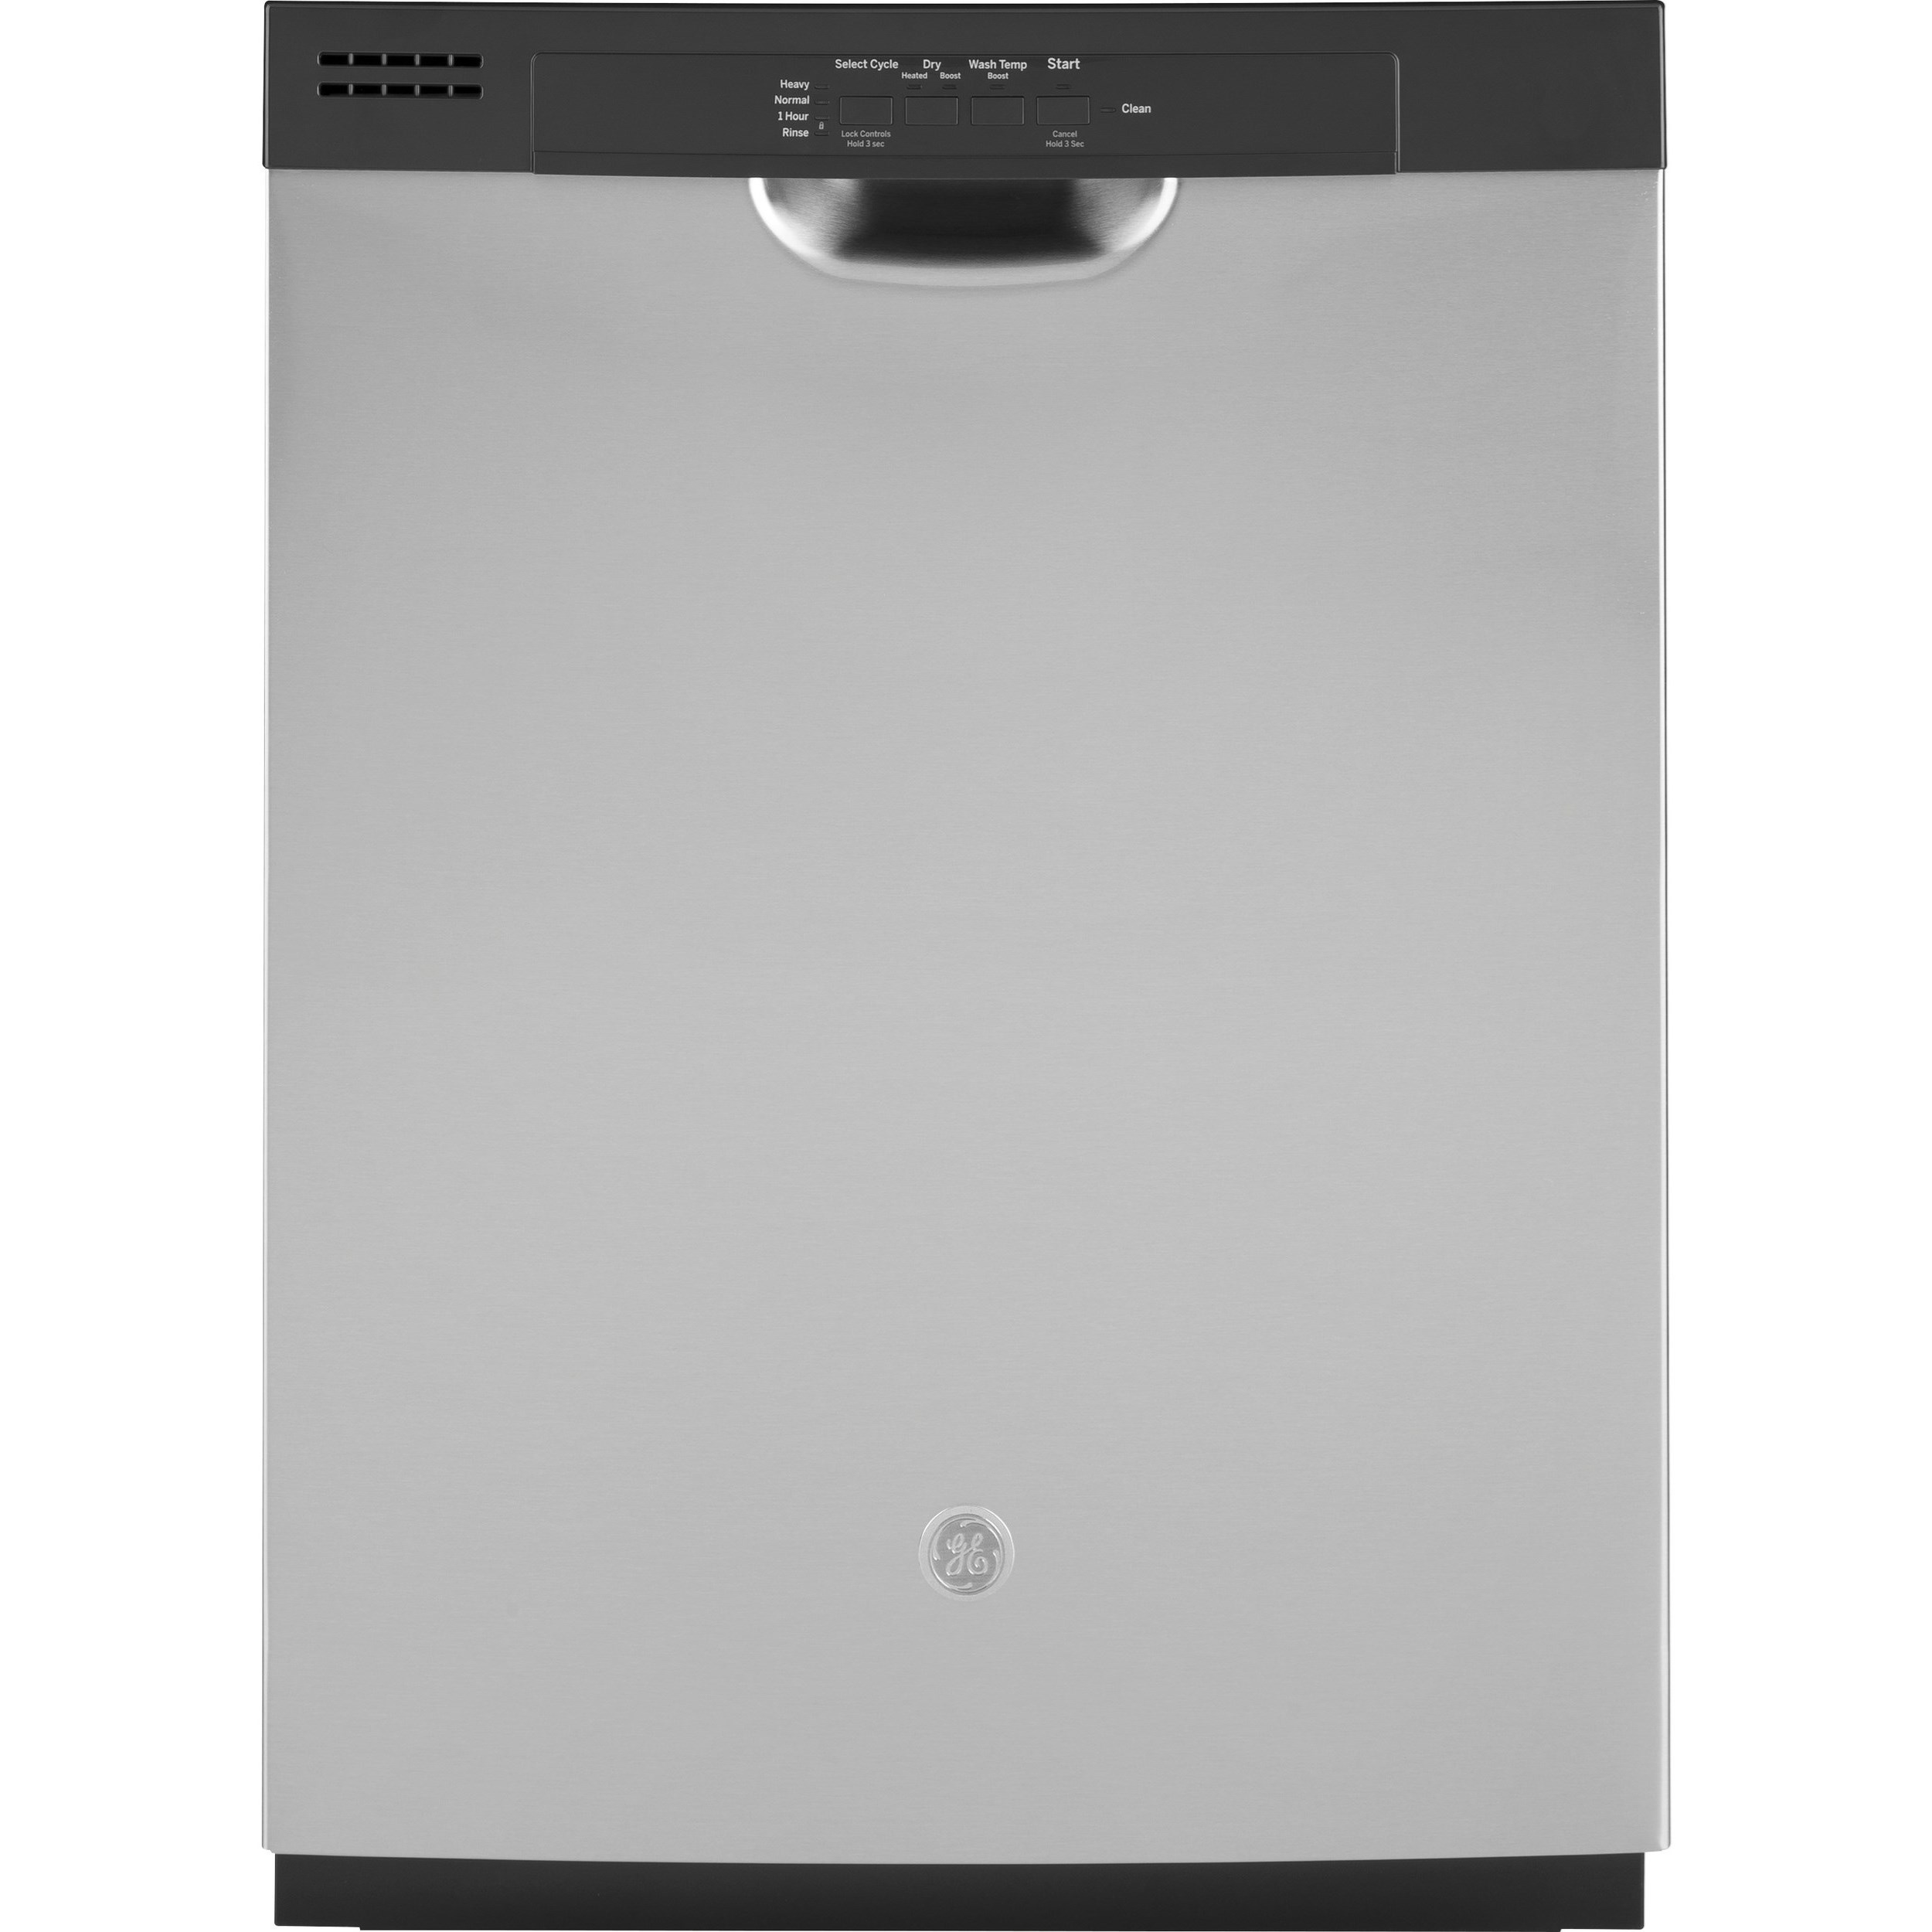 Dishwashers  GE® Dishwasher with Front Controls by GE Appliances at VanDrie Home Furnishings